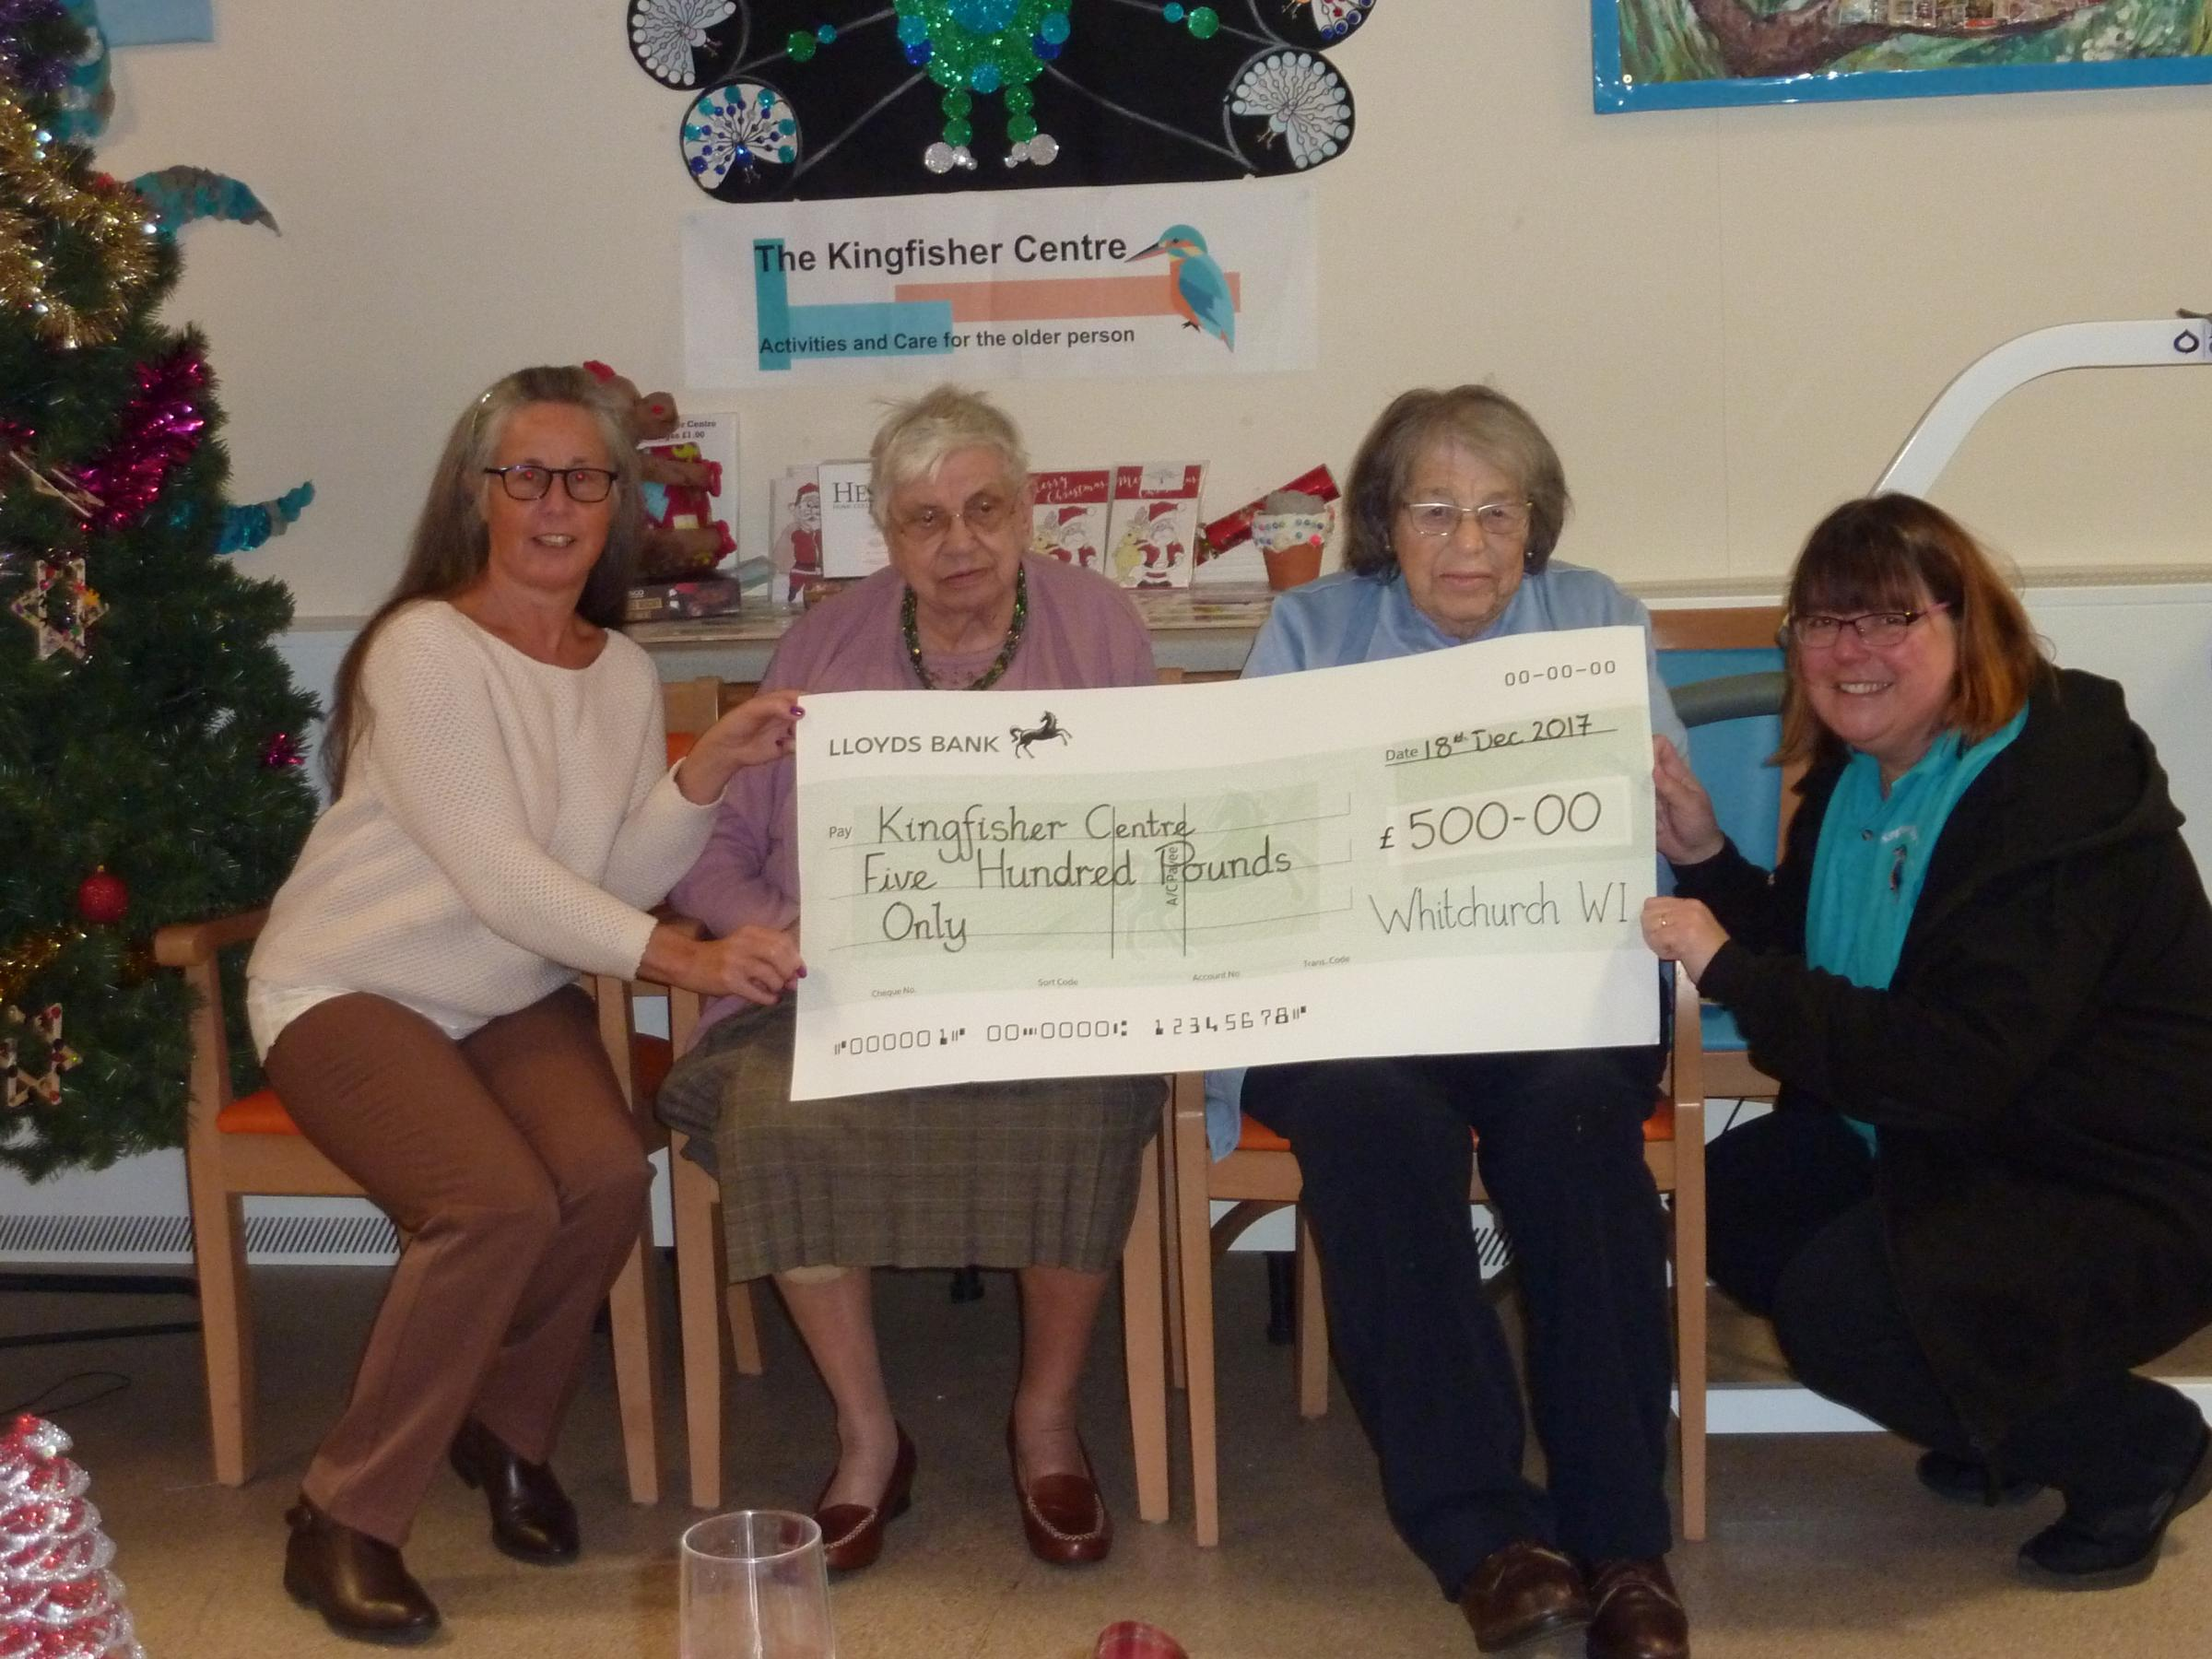 The photo shows Adele Gilchrist (President of Whitchurch WI) presenting a cheque to Audrey Ball, Mary Kinge and Nicola Smith of the Kingfisher Centre, Laverstoke.